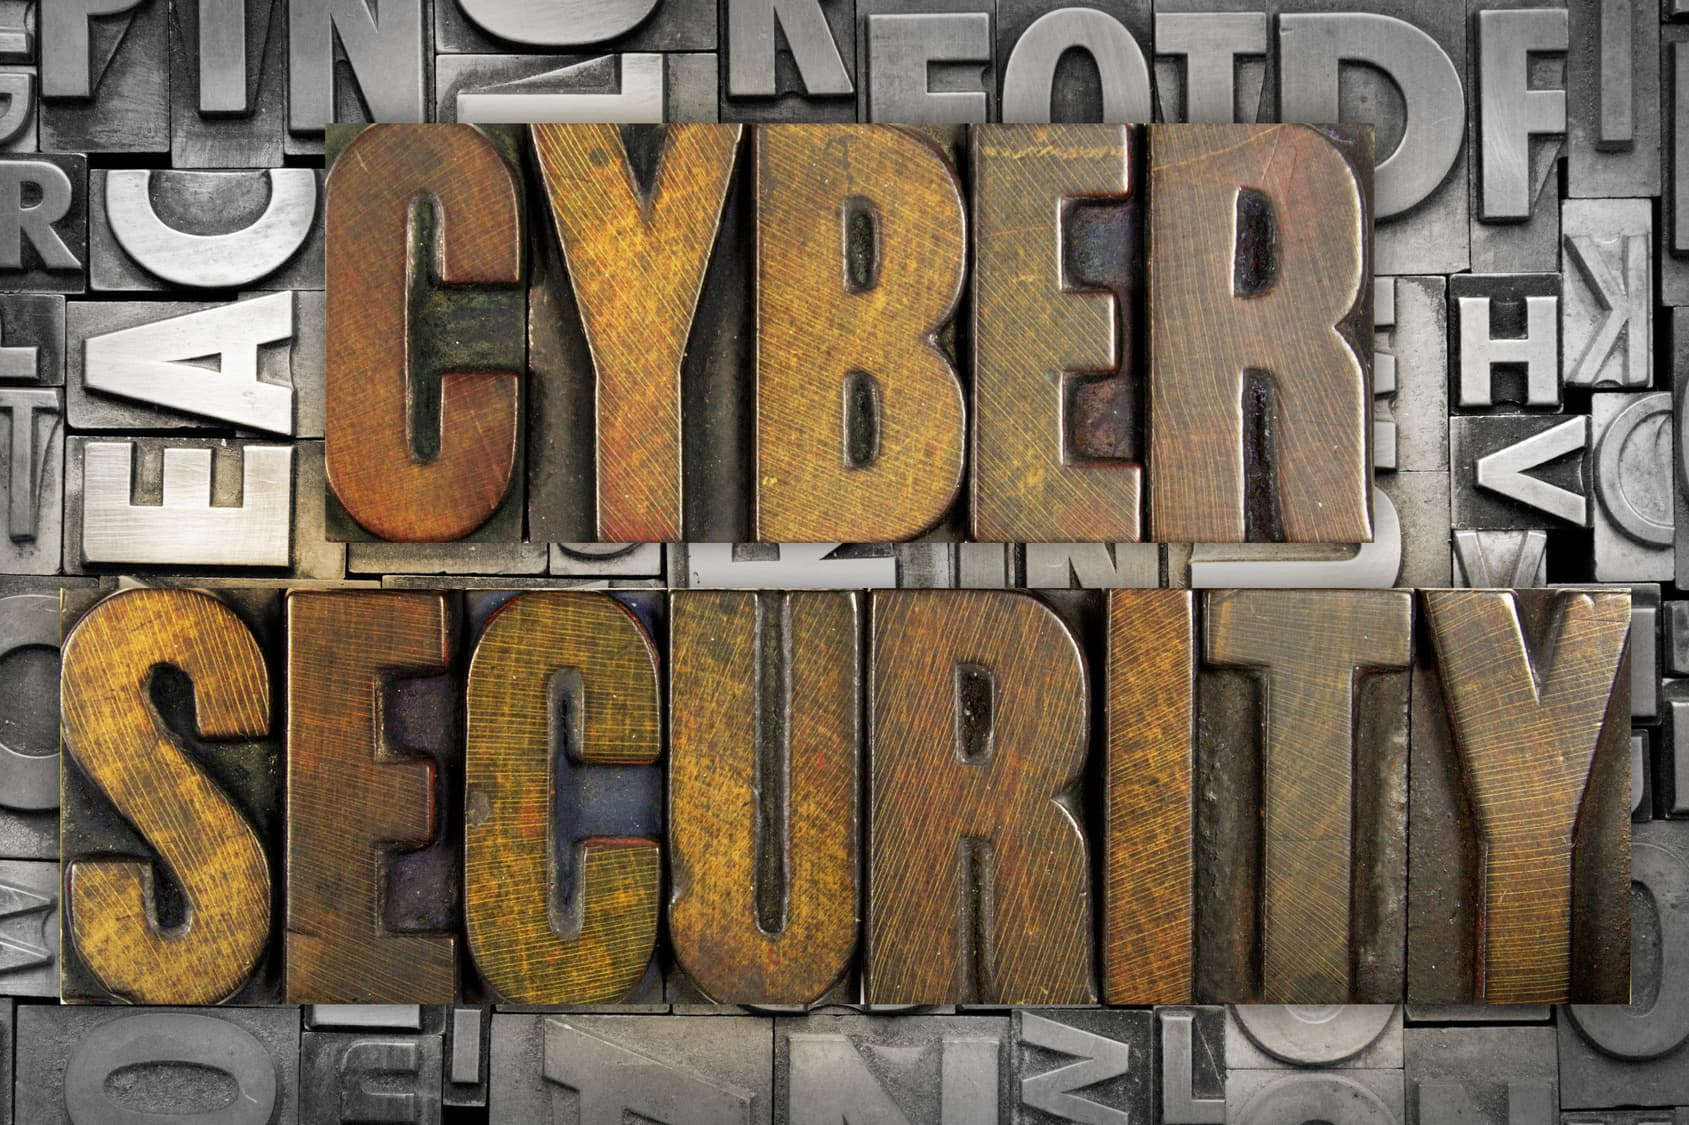 5 Ways Your Small Business Can Prevent Cyber Crime 1